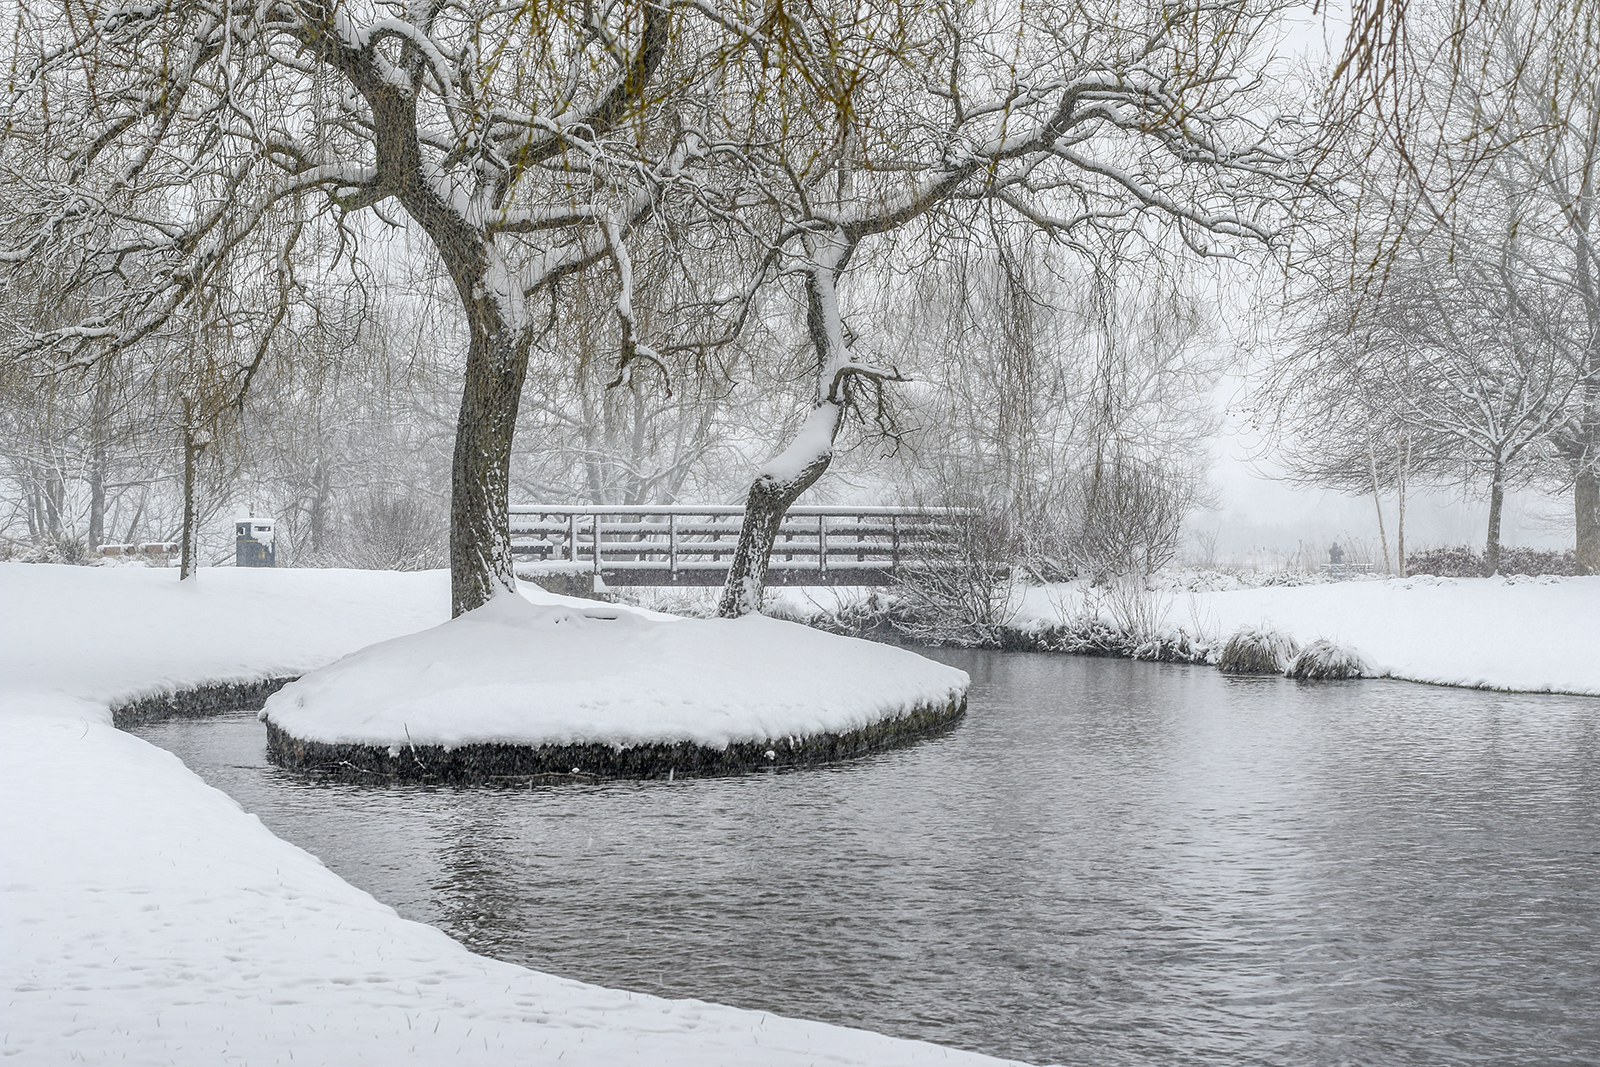 'Snow in the park' by Tony O'Reilly